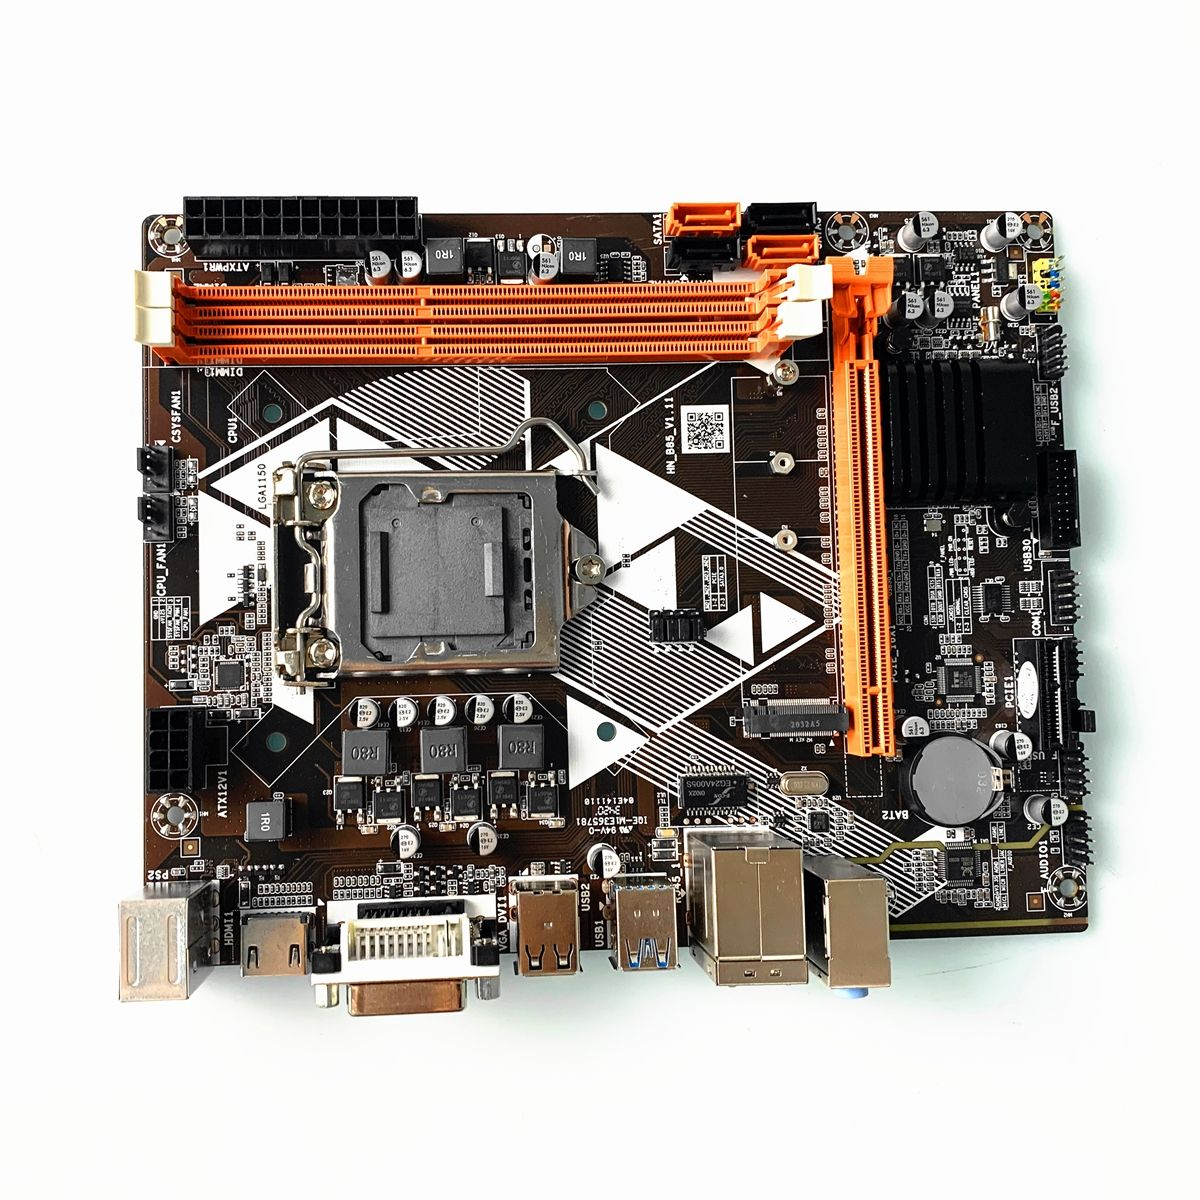 OEM New mainboard b85 lga 1150 support 2* ddr3 ram and usb 3.0 motherboard for gaming PC